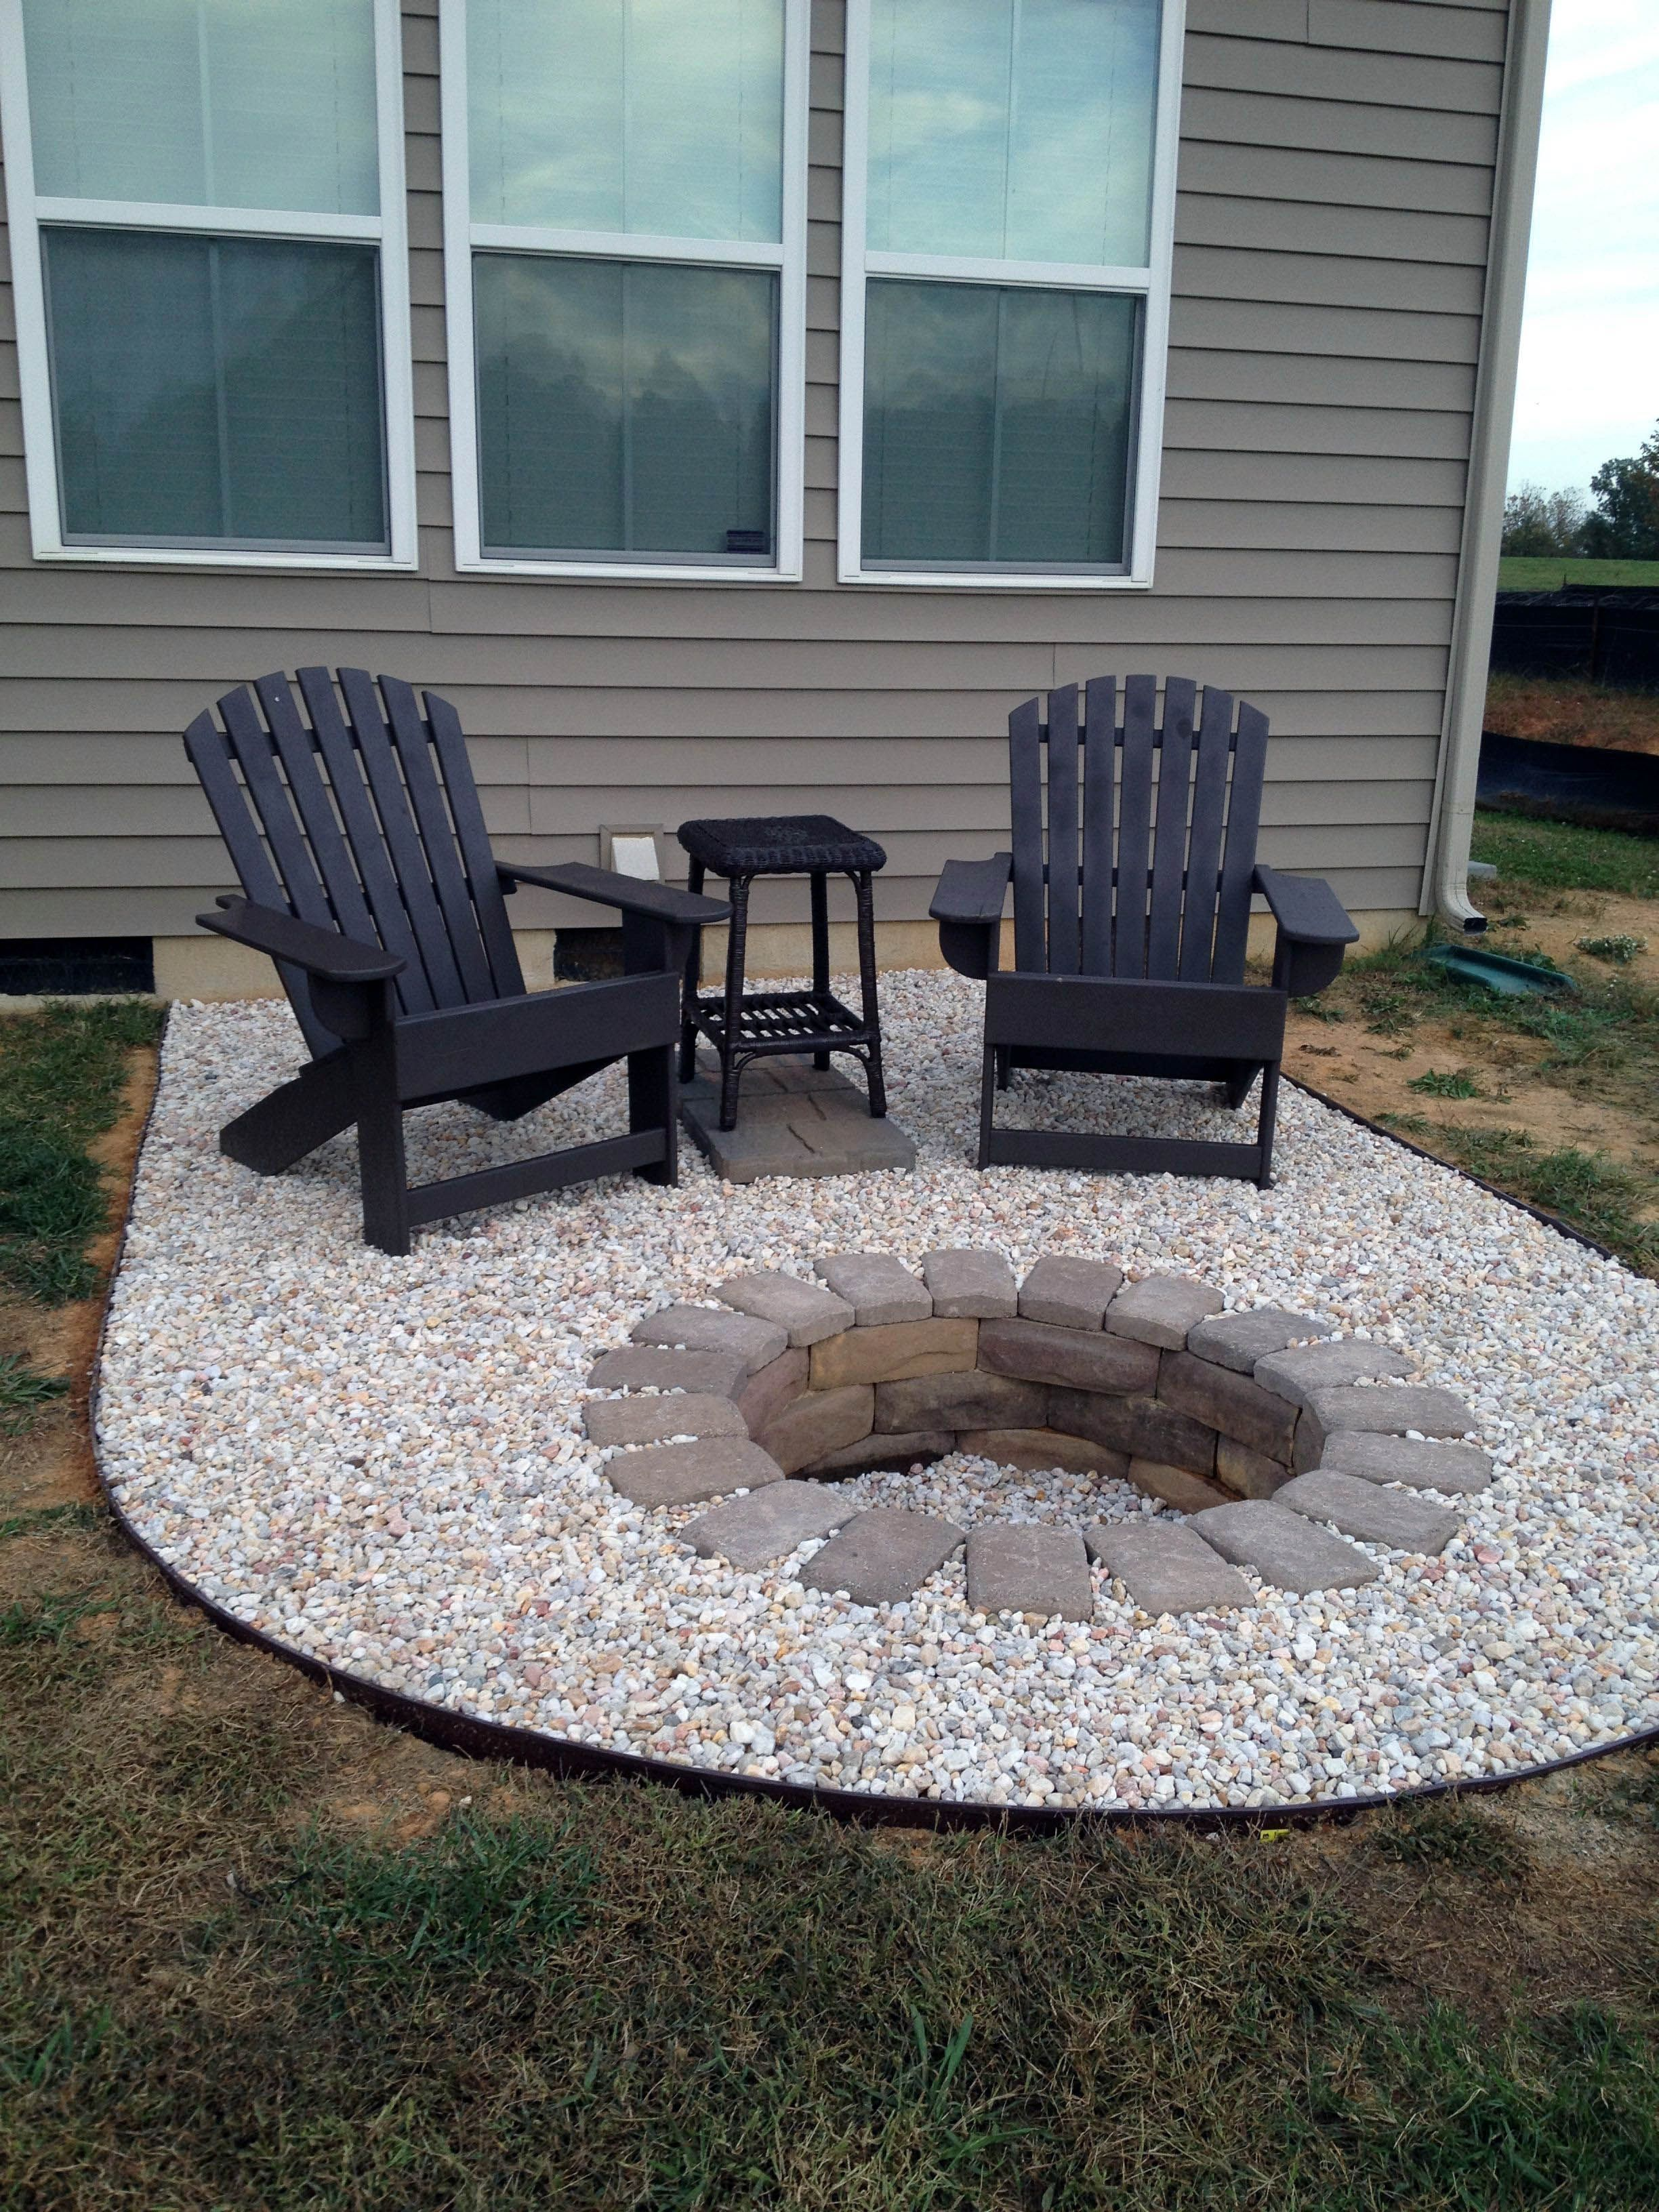 Fabulous Ideas For Outdoor Fire Pit Areas Exclusive On Homesable Com Cheap Fire Pit Backyard Fire Backyard Makeover